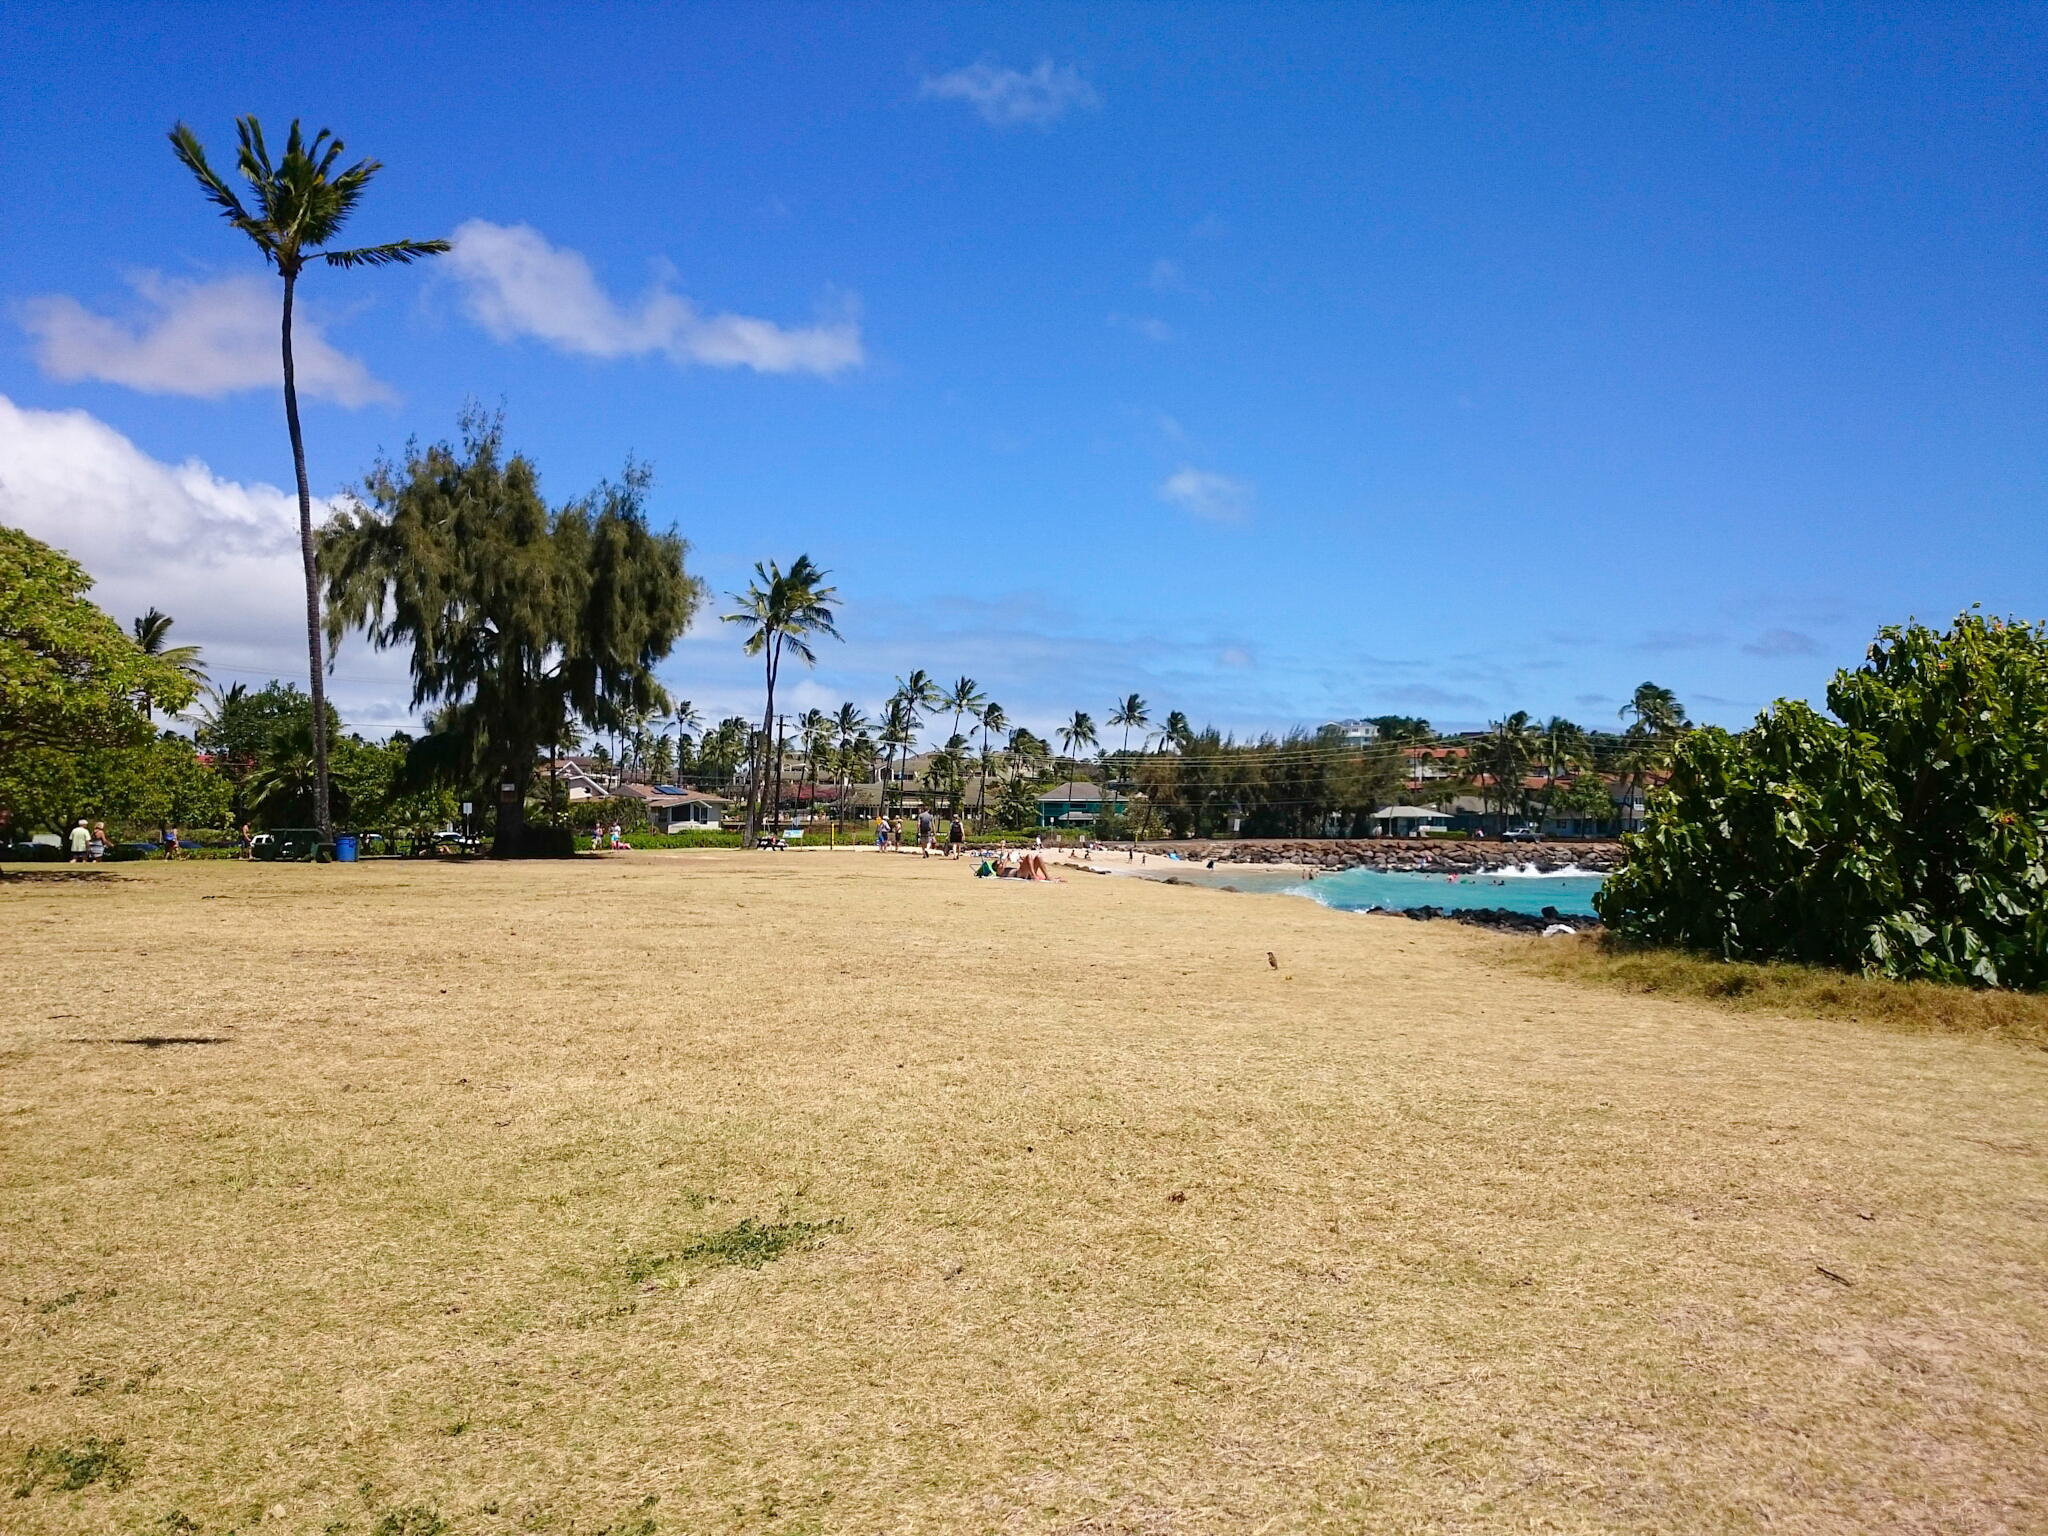 Poipu beach park in Kauai, Hawaii